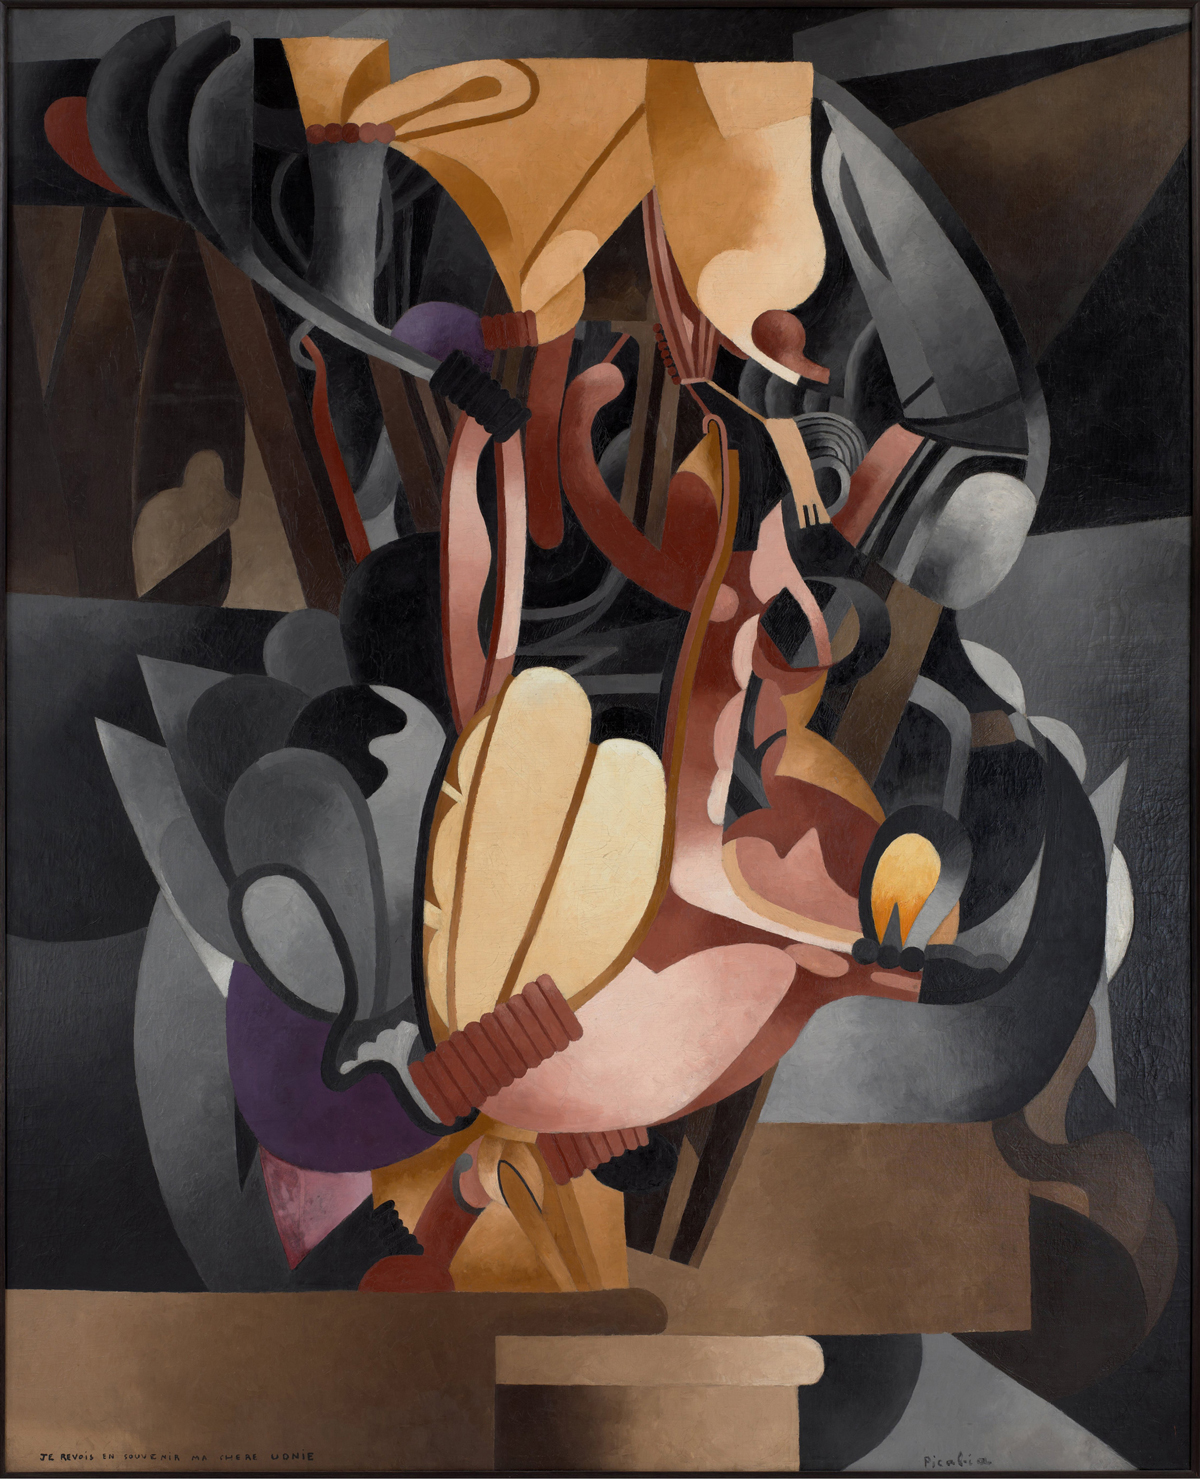 Francis Picabia, Je revois en souvenir ma chère Udnie (I See Again in Memory My Dear Udnie), 1914, oil on canvas (photo: Museum of Modern Art John Wronn; Art: ©2016 Artists Rights Society (ARS), NY and ADAGP, Paris/Museum of Modern Art, New York)